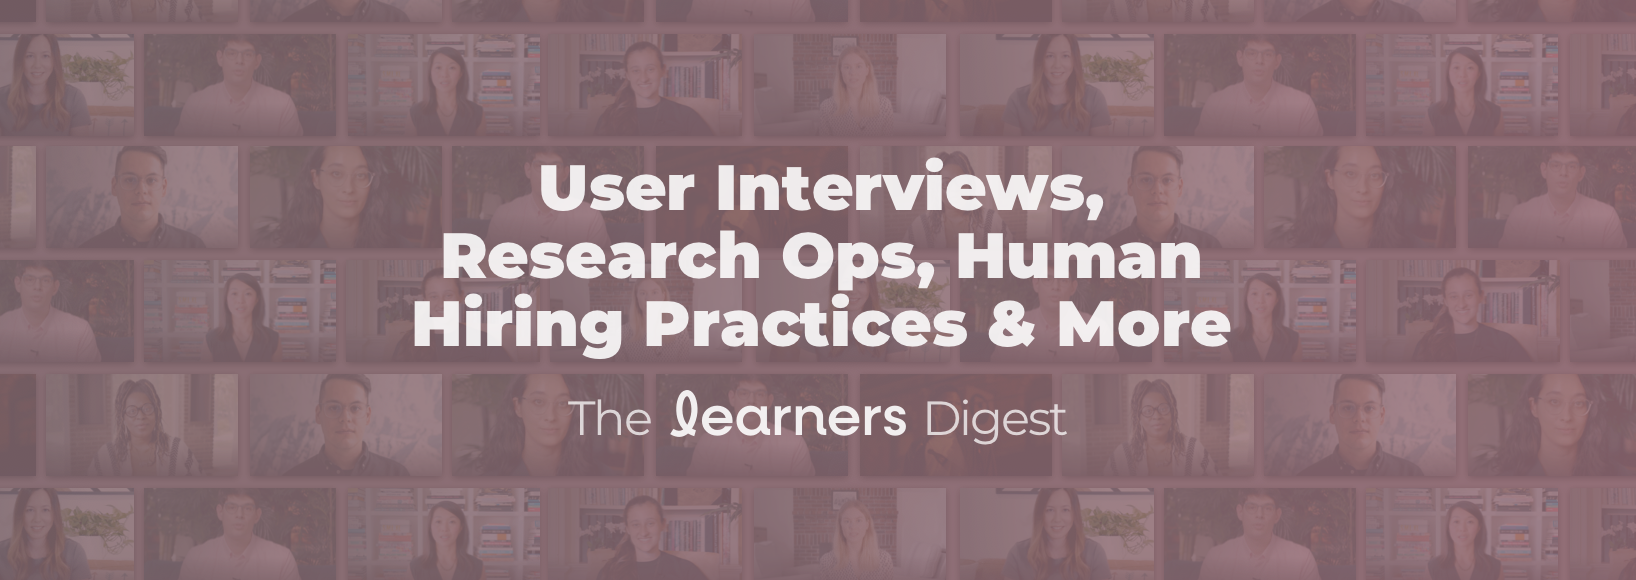 User Interviews, Research Ops, Human Hiring Practices & More | The Learners Digest